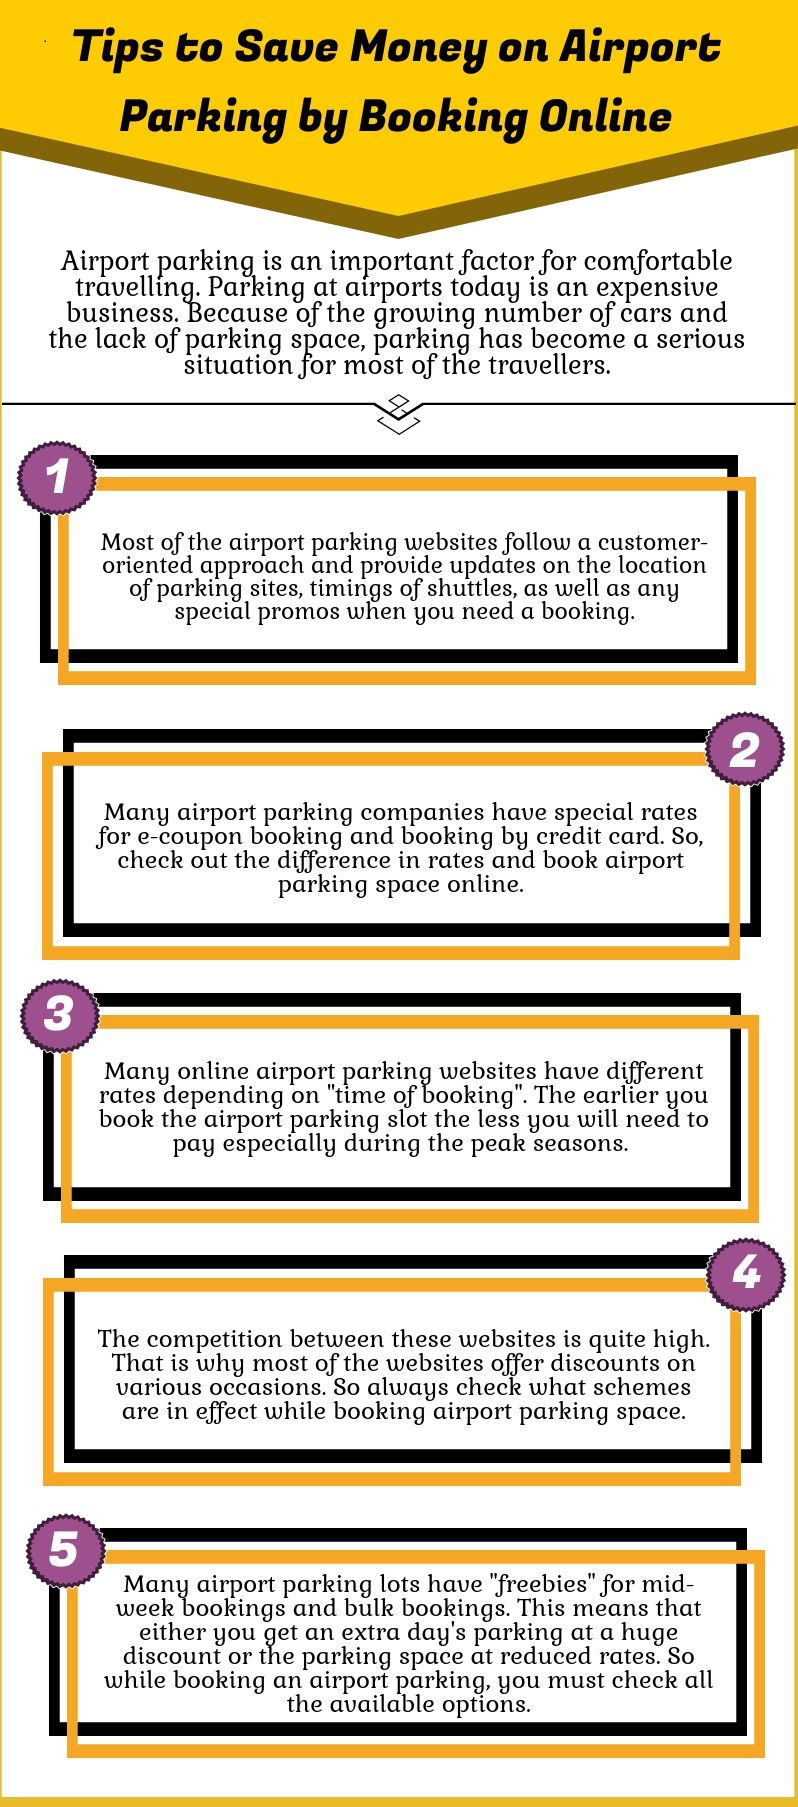 Car parking at the airport can be a very difficult task if